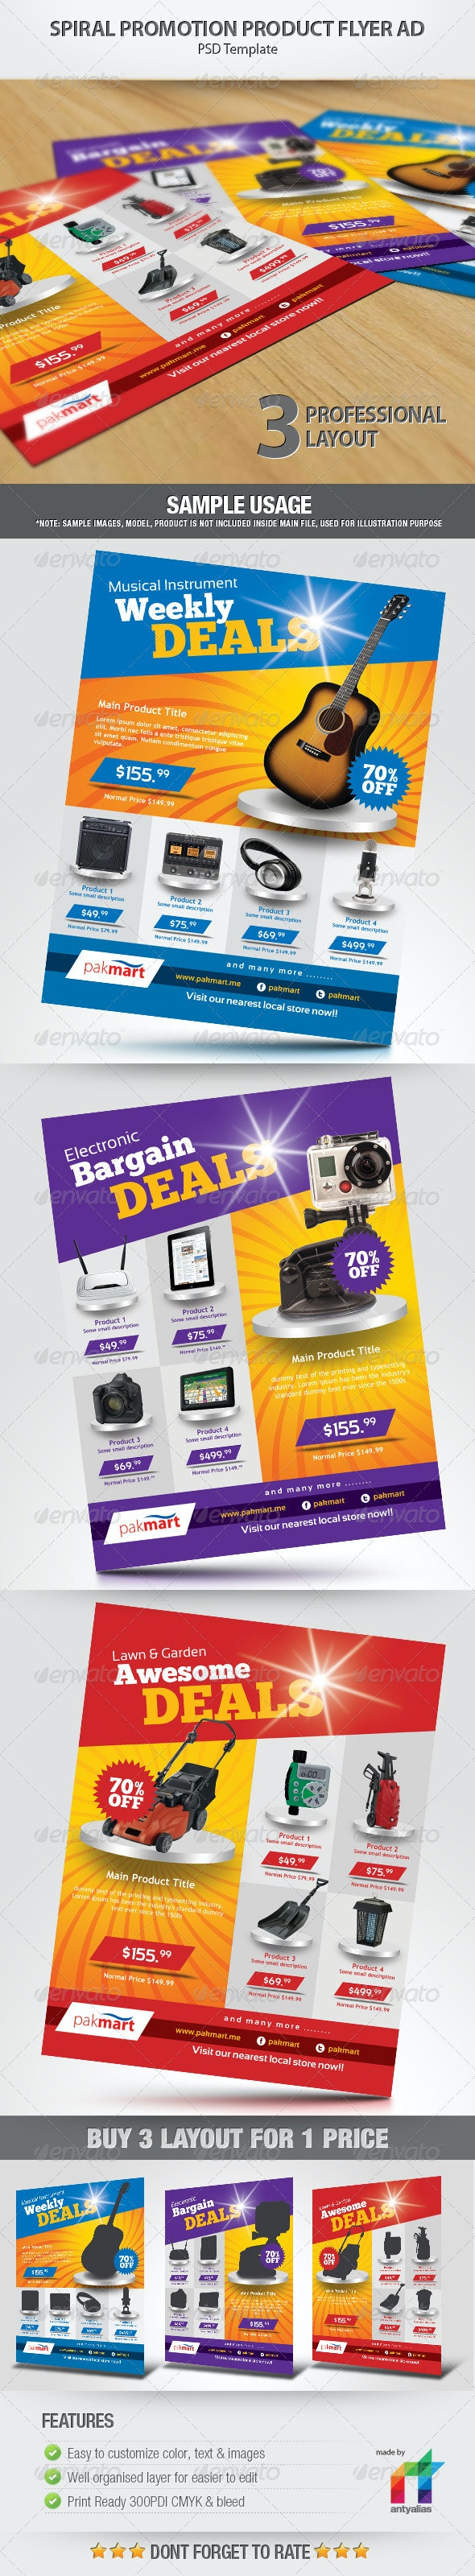 Spiral Promotion Product Flyer Ad - Commerce Flyers